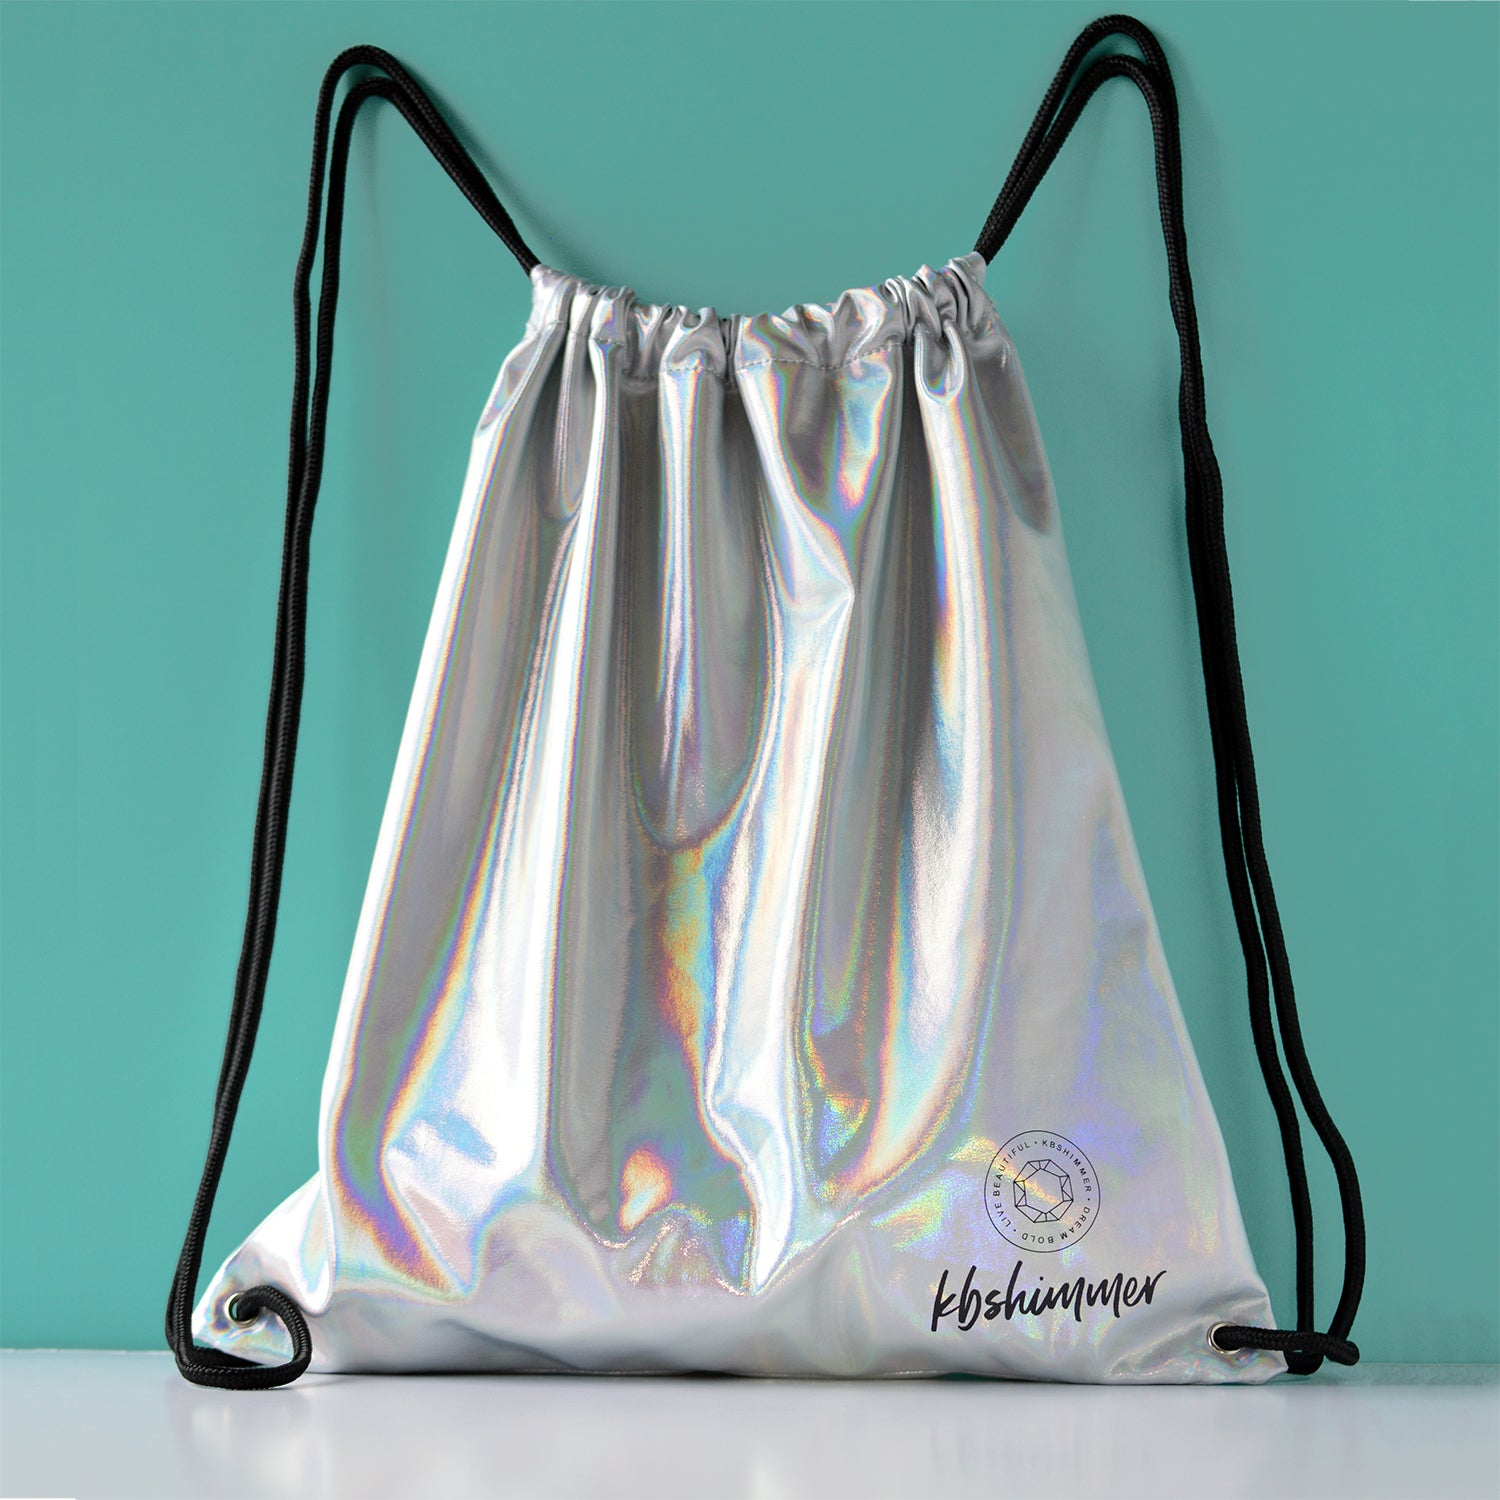 KBShimmer - Silver Holographic Drawstring Backpack